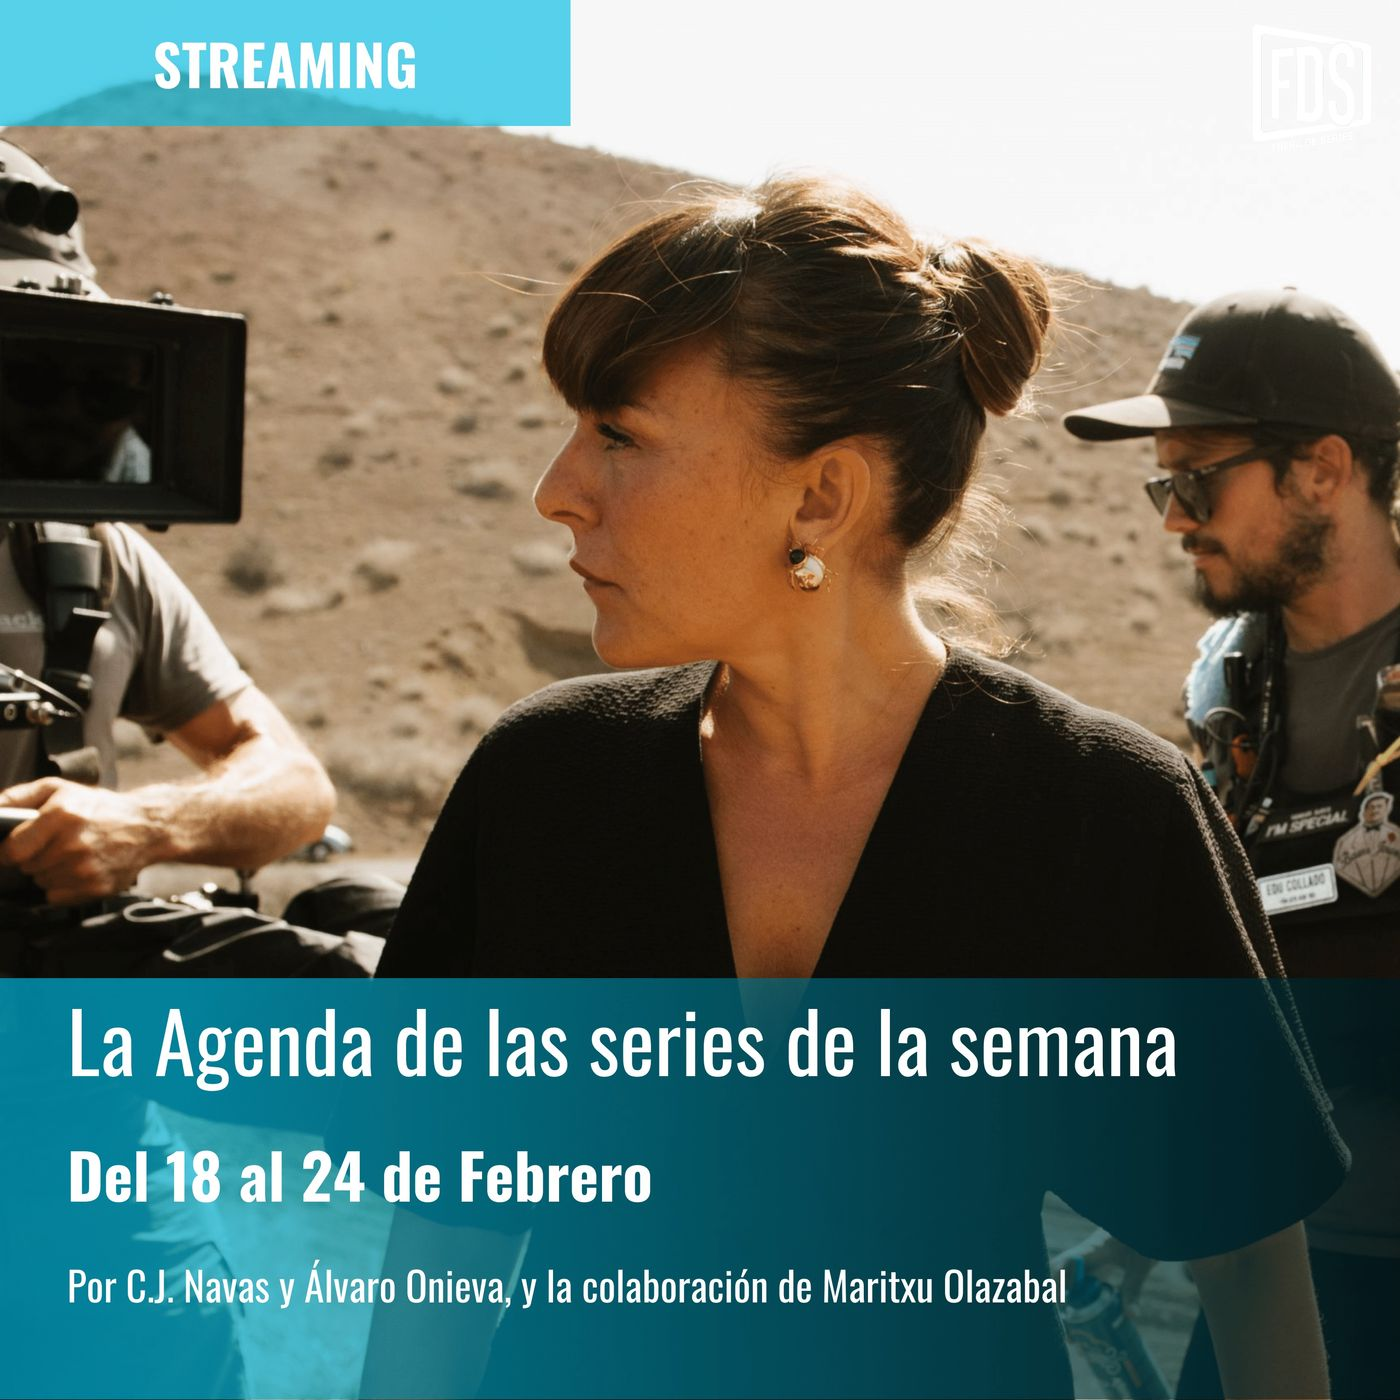 Streaming: Agenda de Series del 18 al 24 de febrero